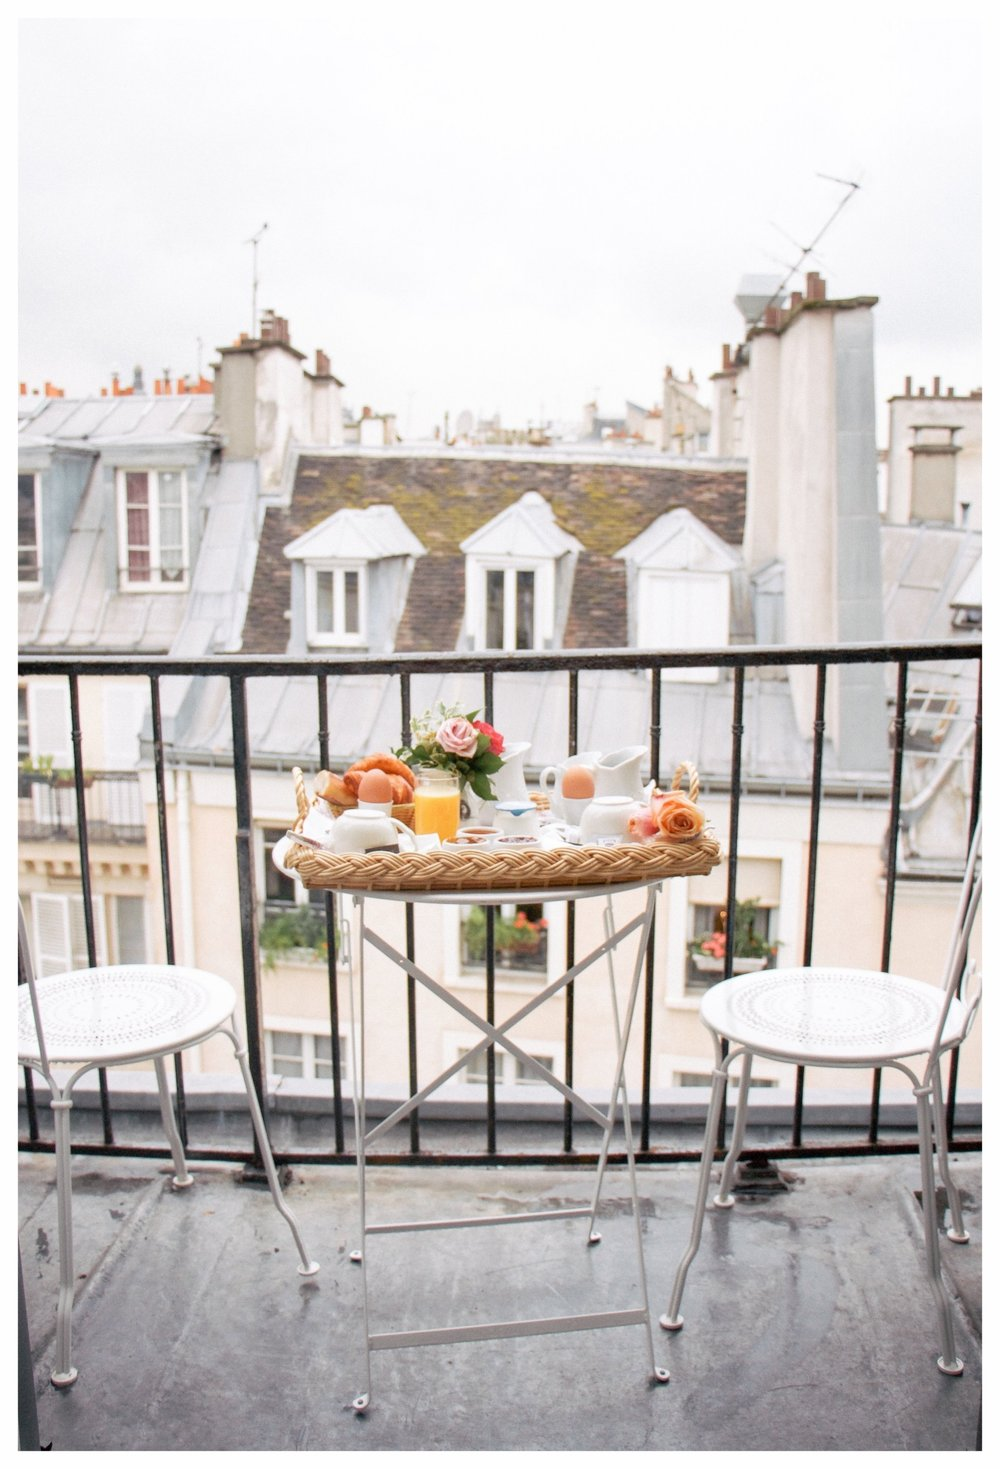 The Most Charming Boutique Hotel in Paris